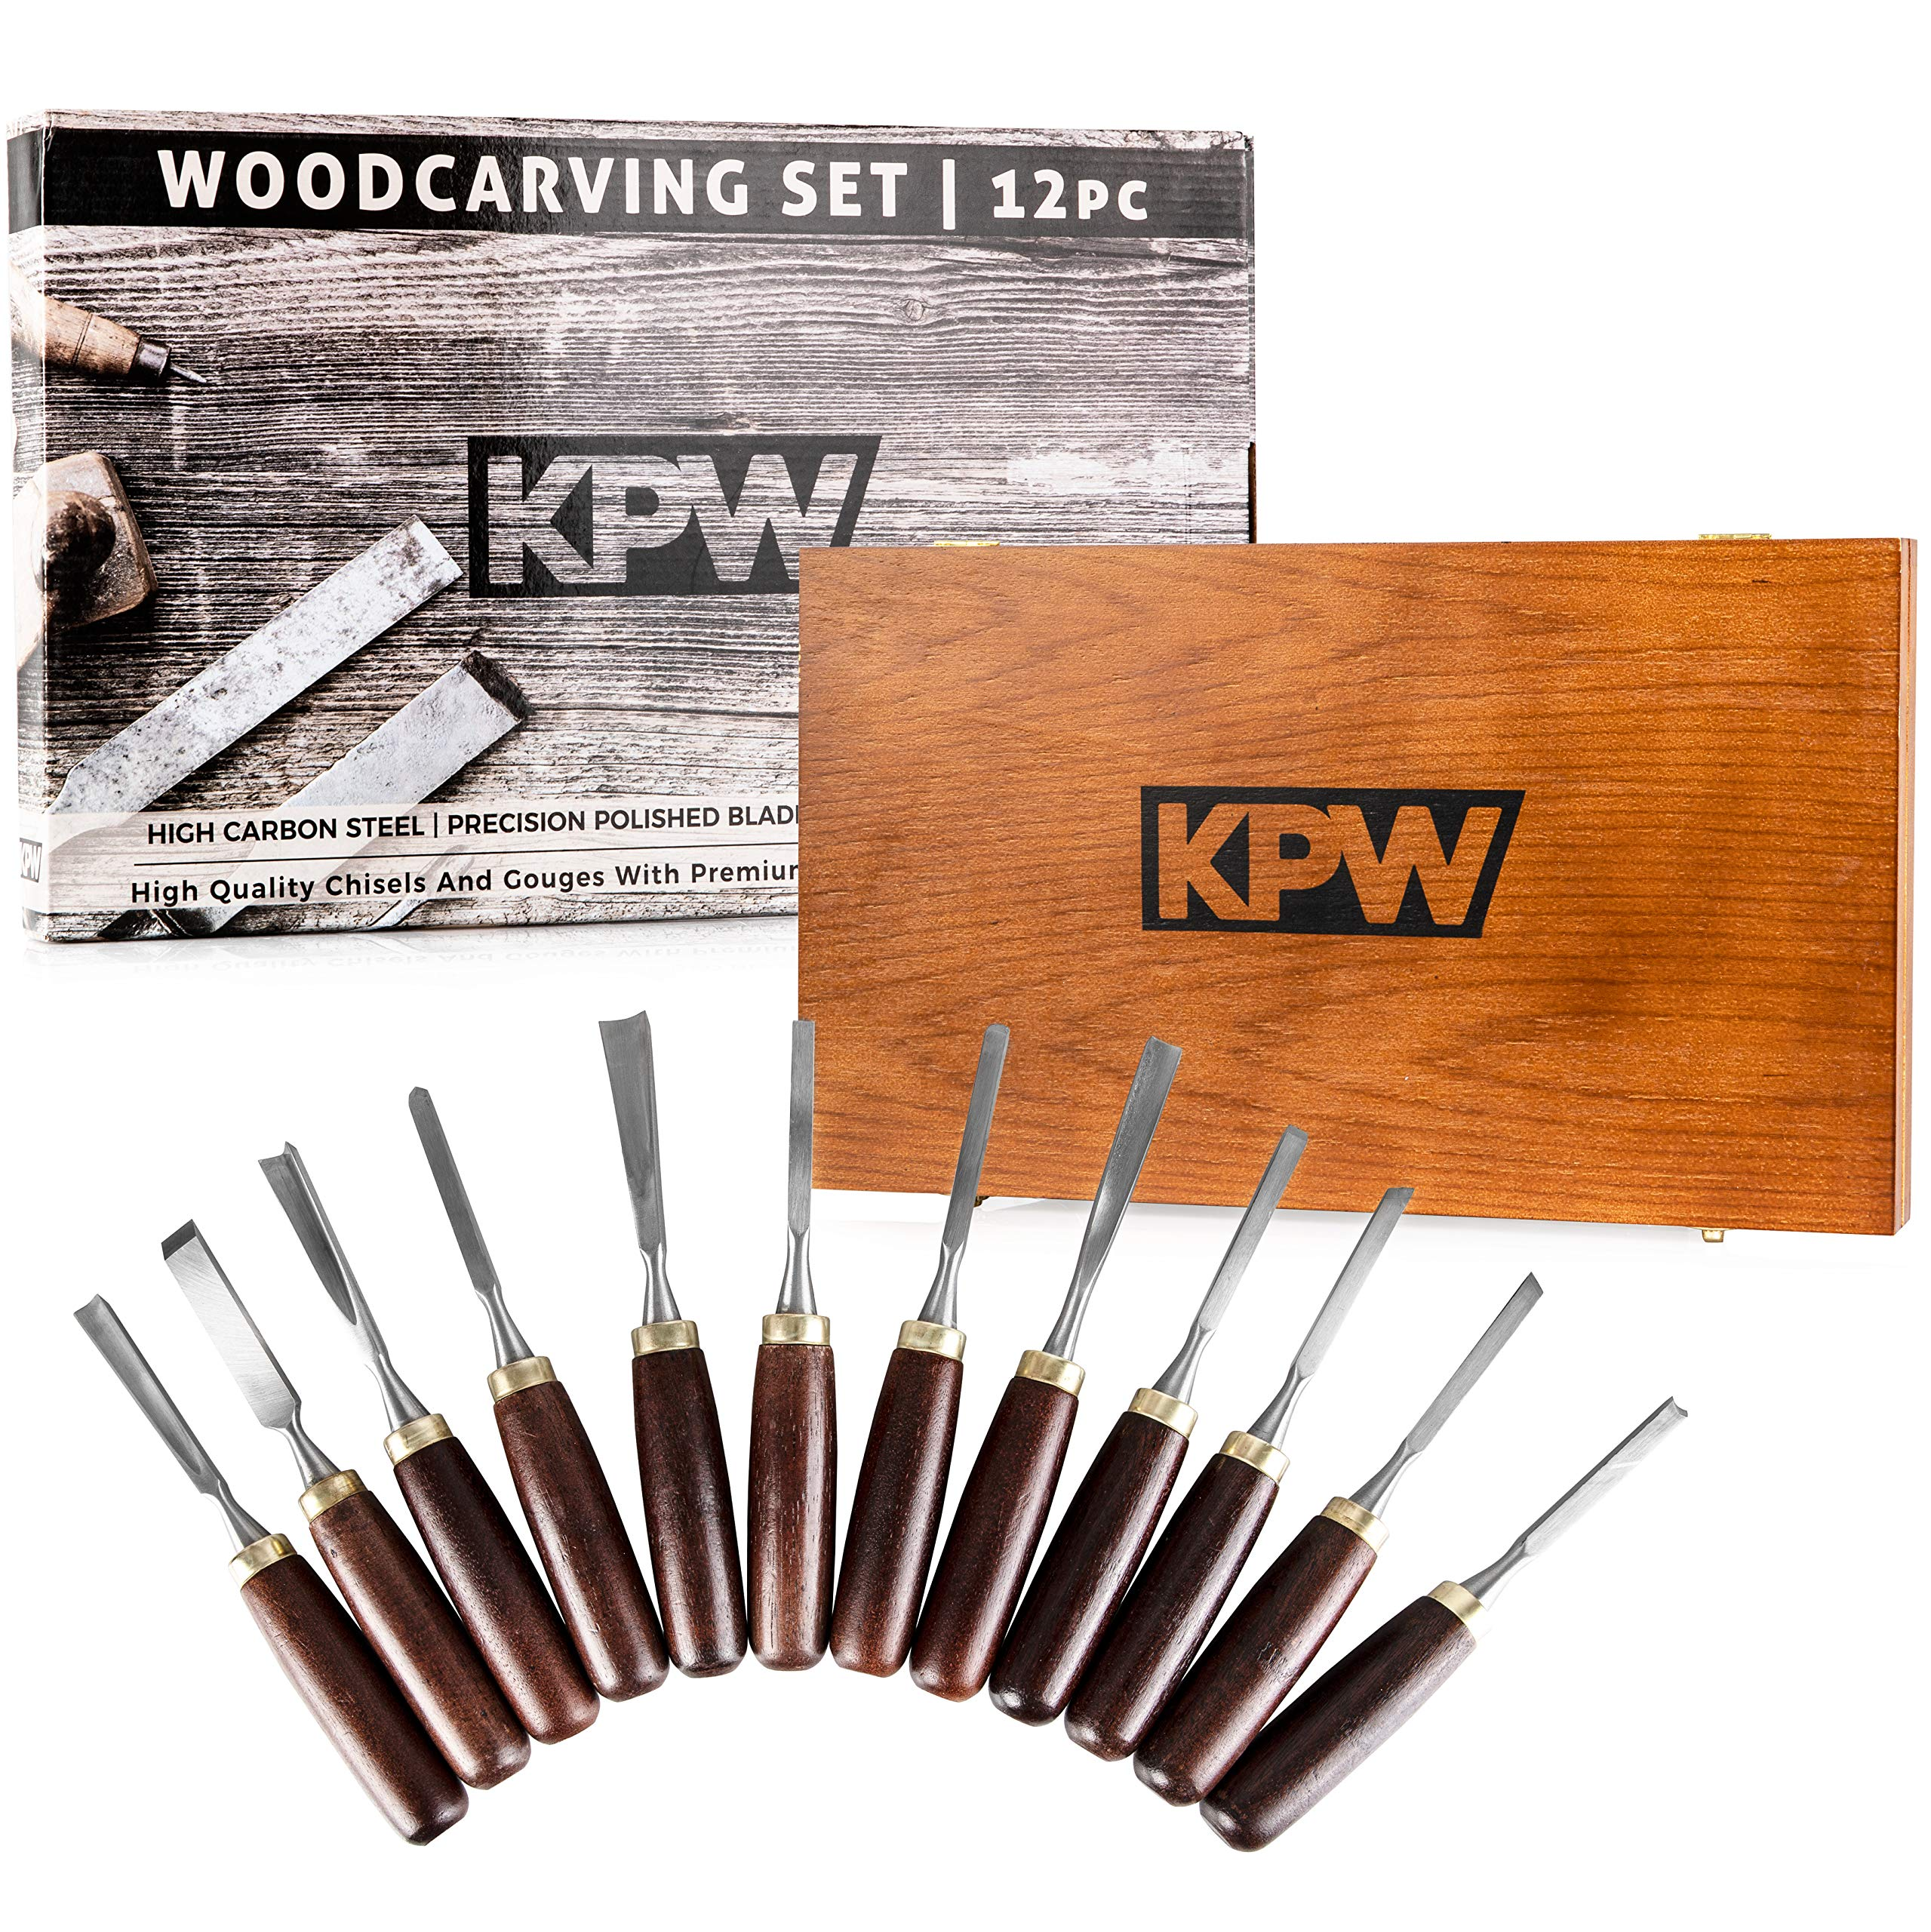 KPW Professional Wood Chisel Set with Wooden Presentation Box | Woodworking & Carving Tools with Chrome Vanadium Steel Blades & Walnut Handles | Lifetime Replacement | Ergonomically Designed | by KPW